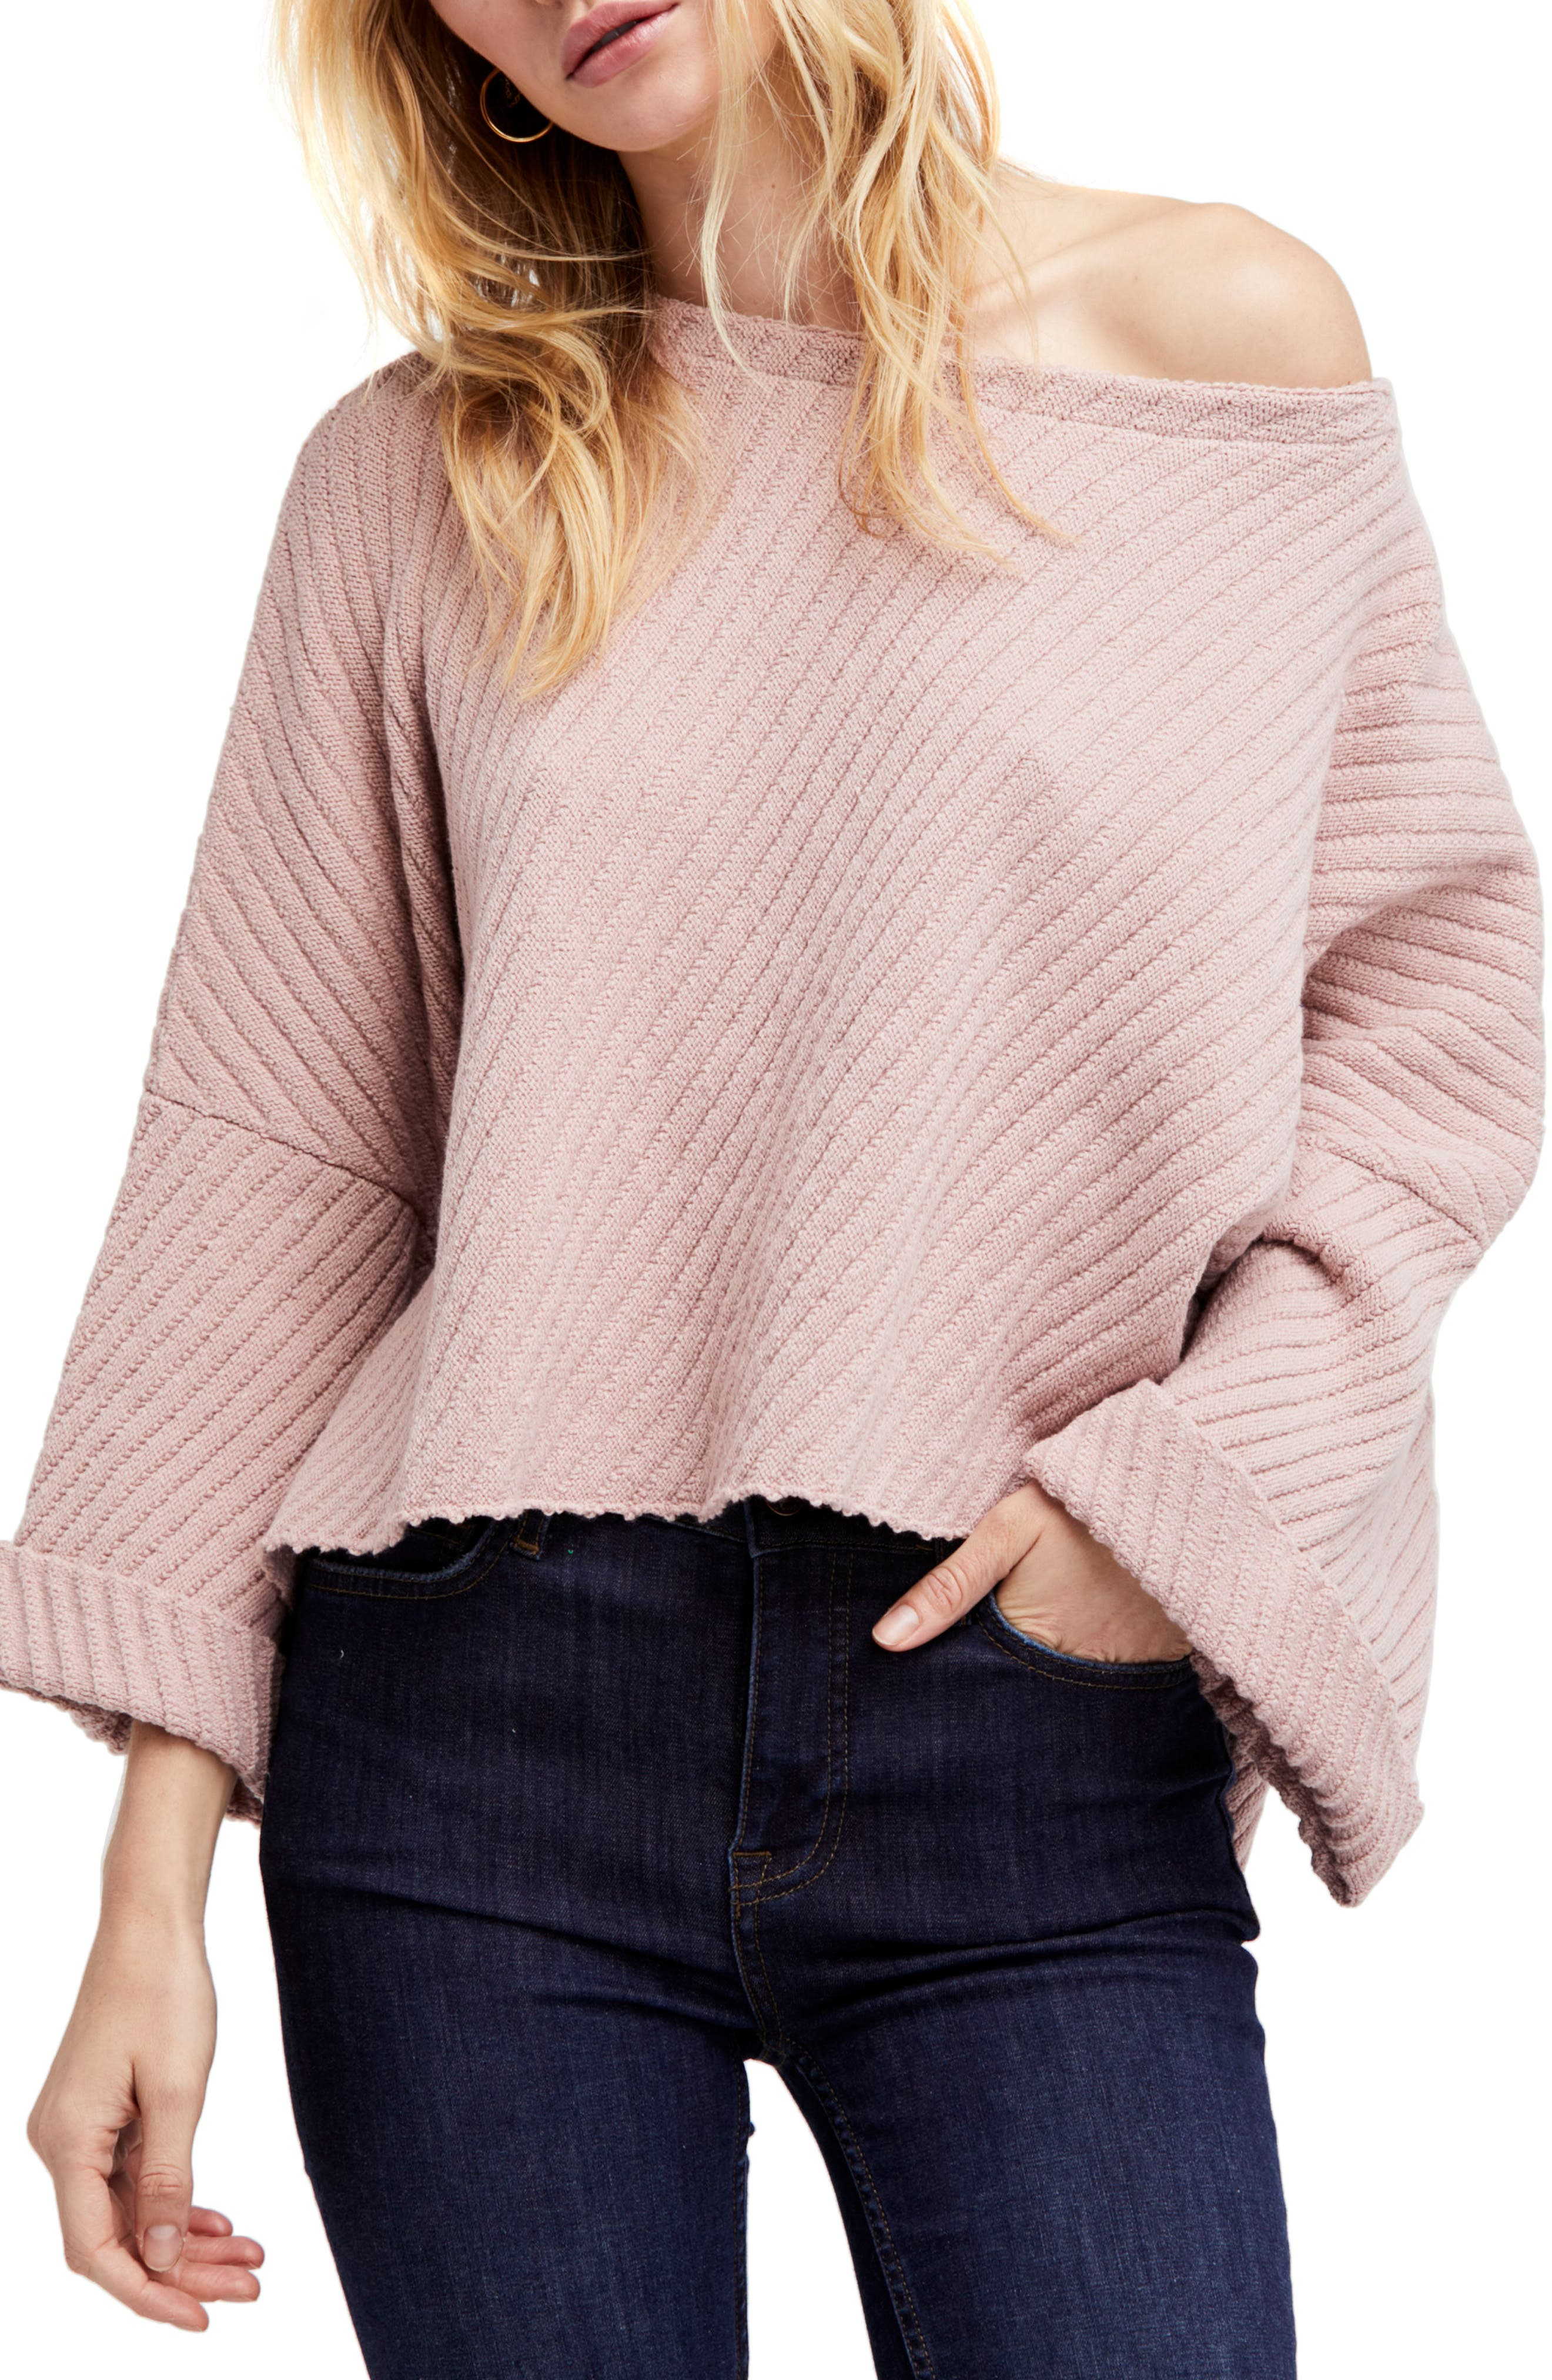 I Can't Wait Crop Sweater,                             Main thumbnail 1, color,                             Rose